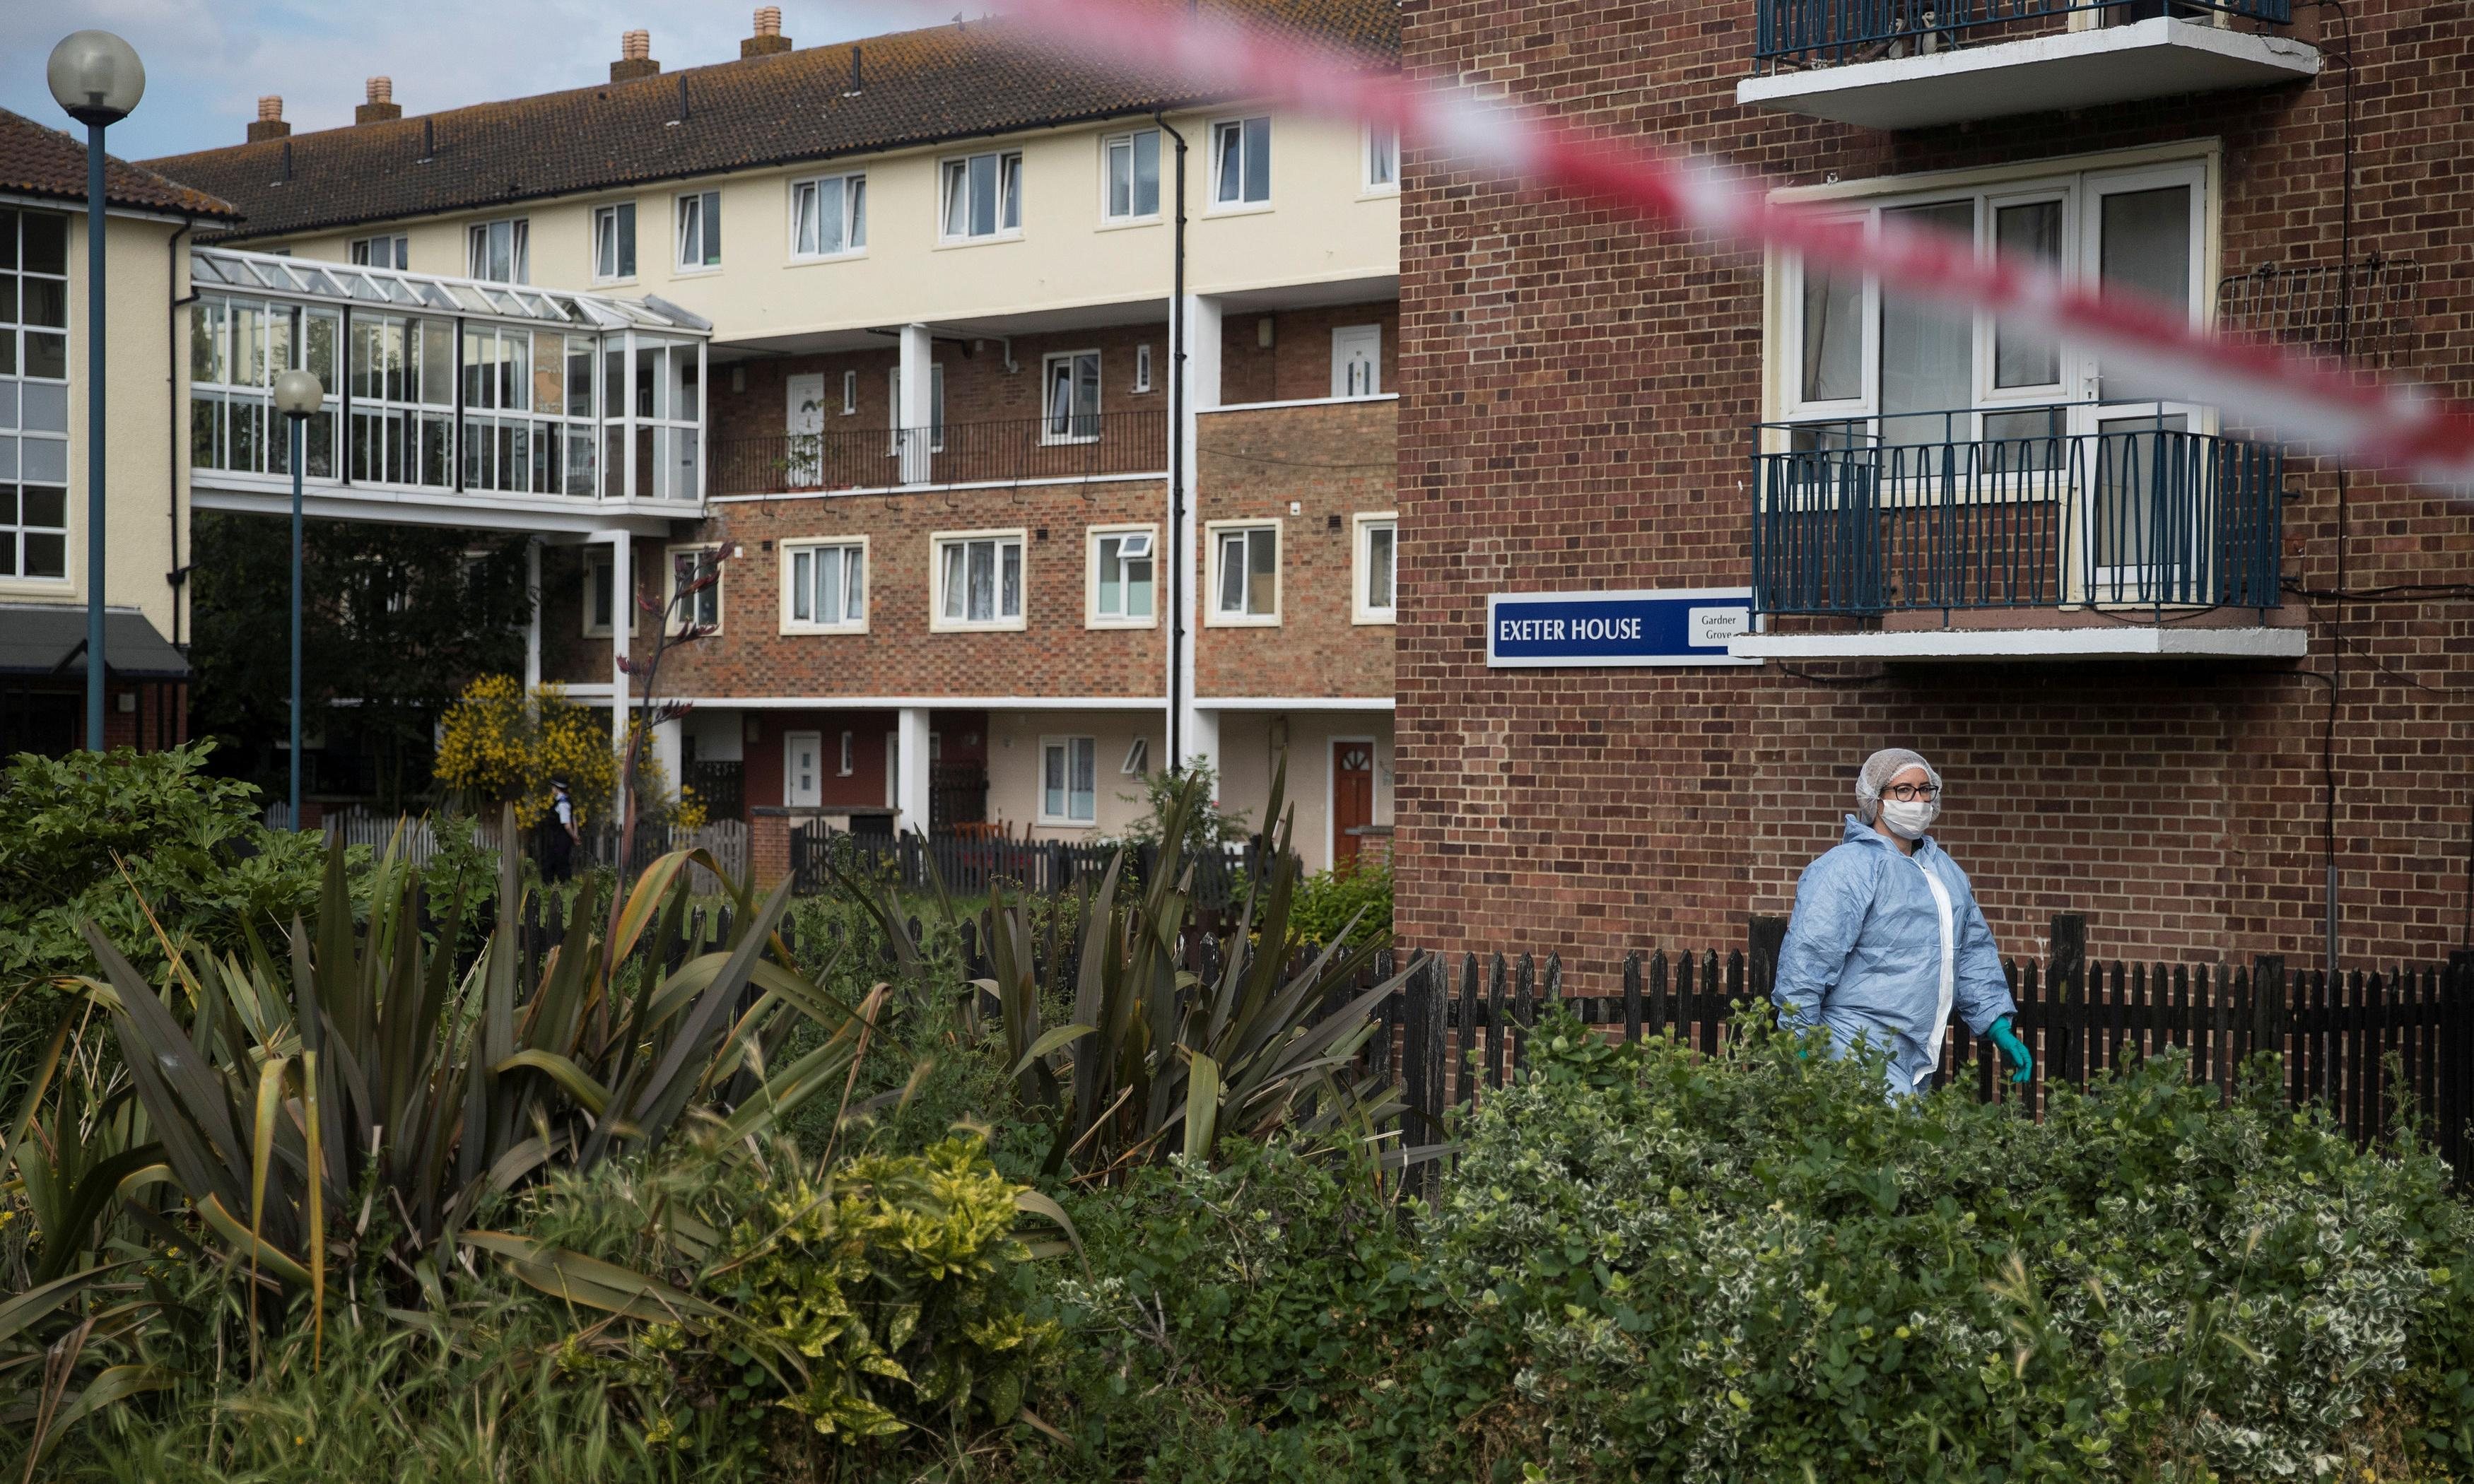 Three arrested after man shot dead in west London